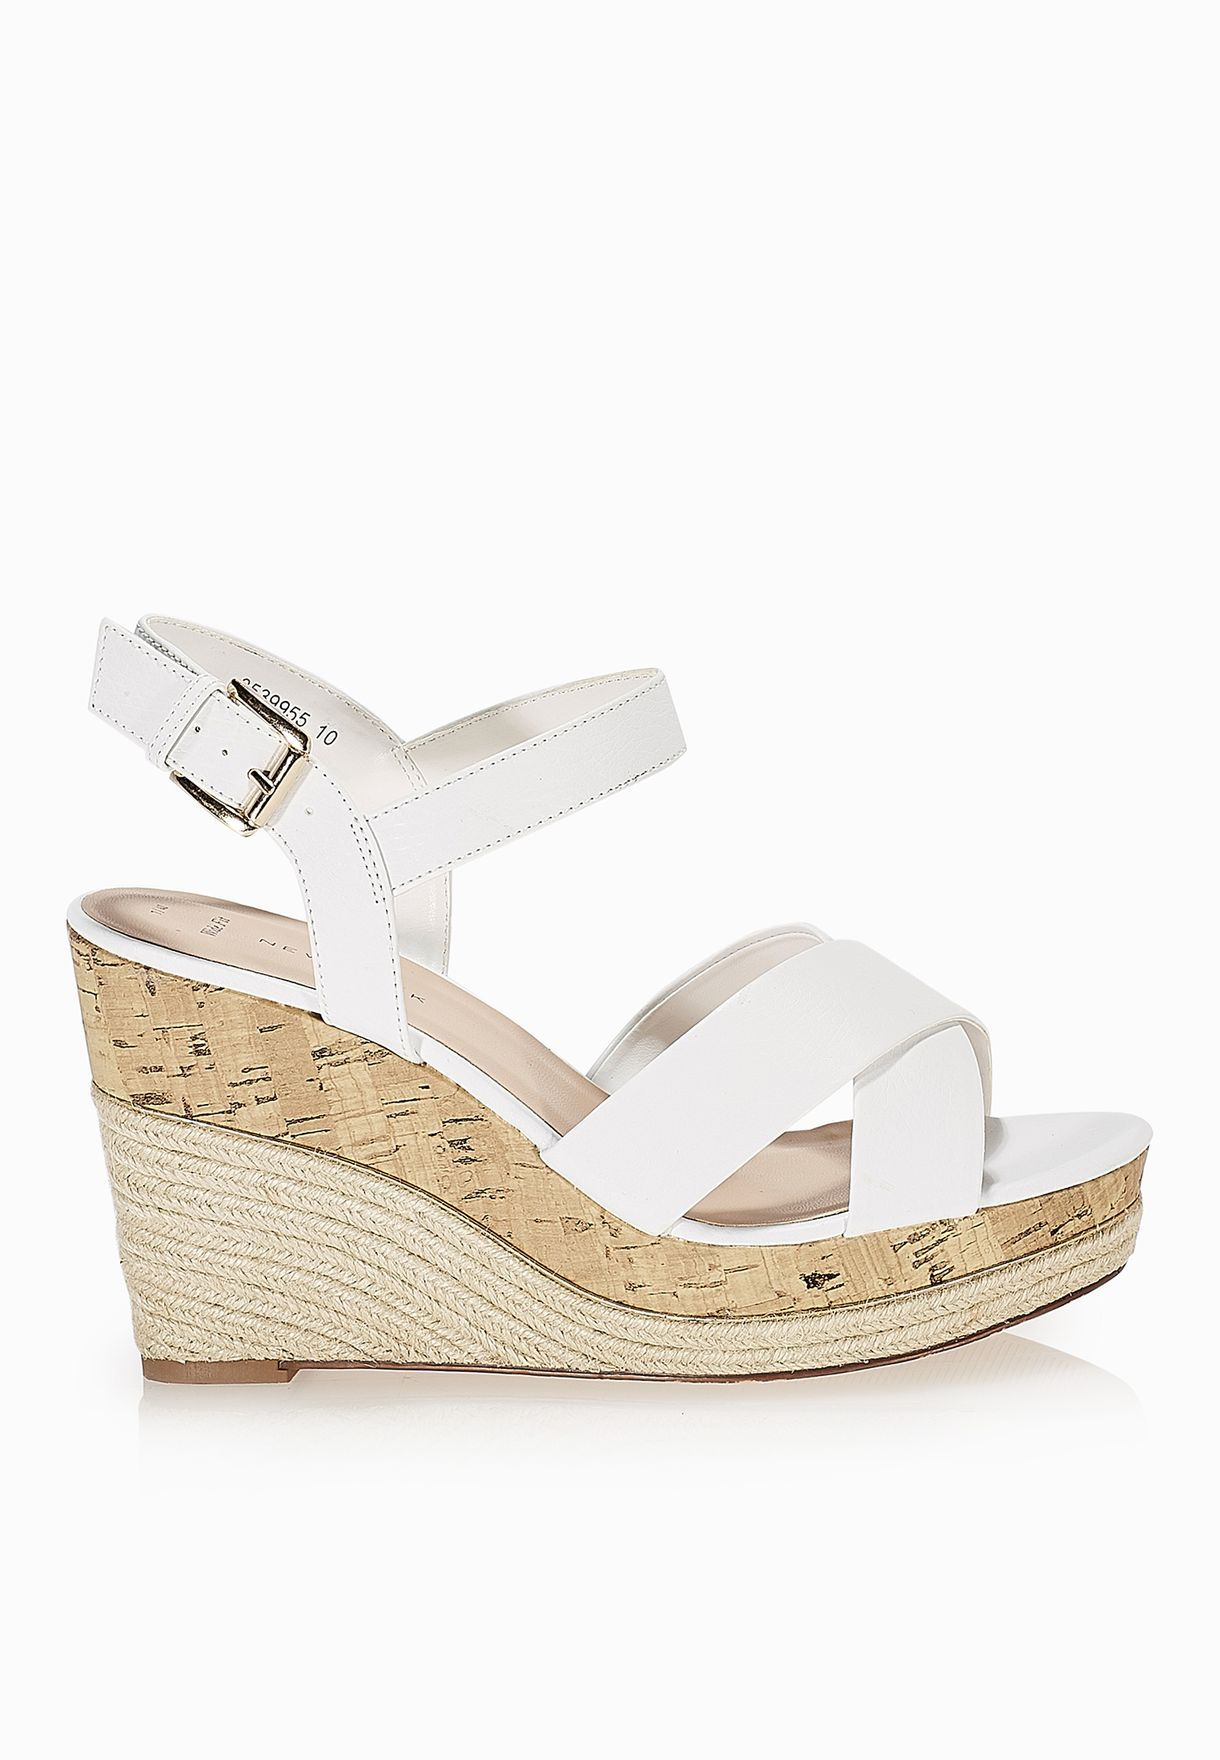 a249f23b2ca Shop New Look white Cross Strap Espadrille Wedge Sandals for Women ...